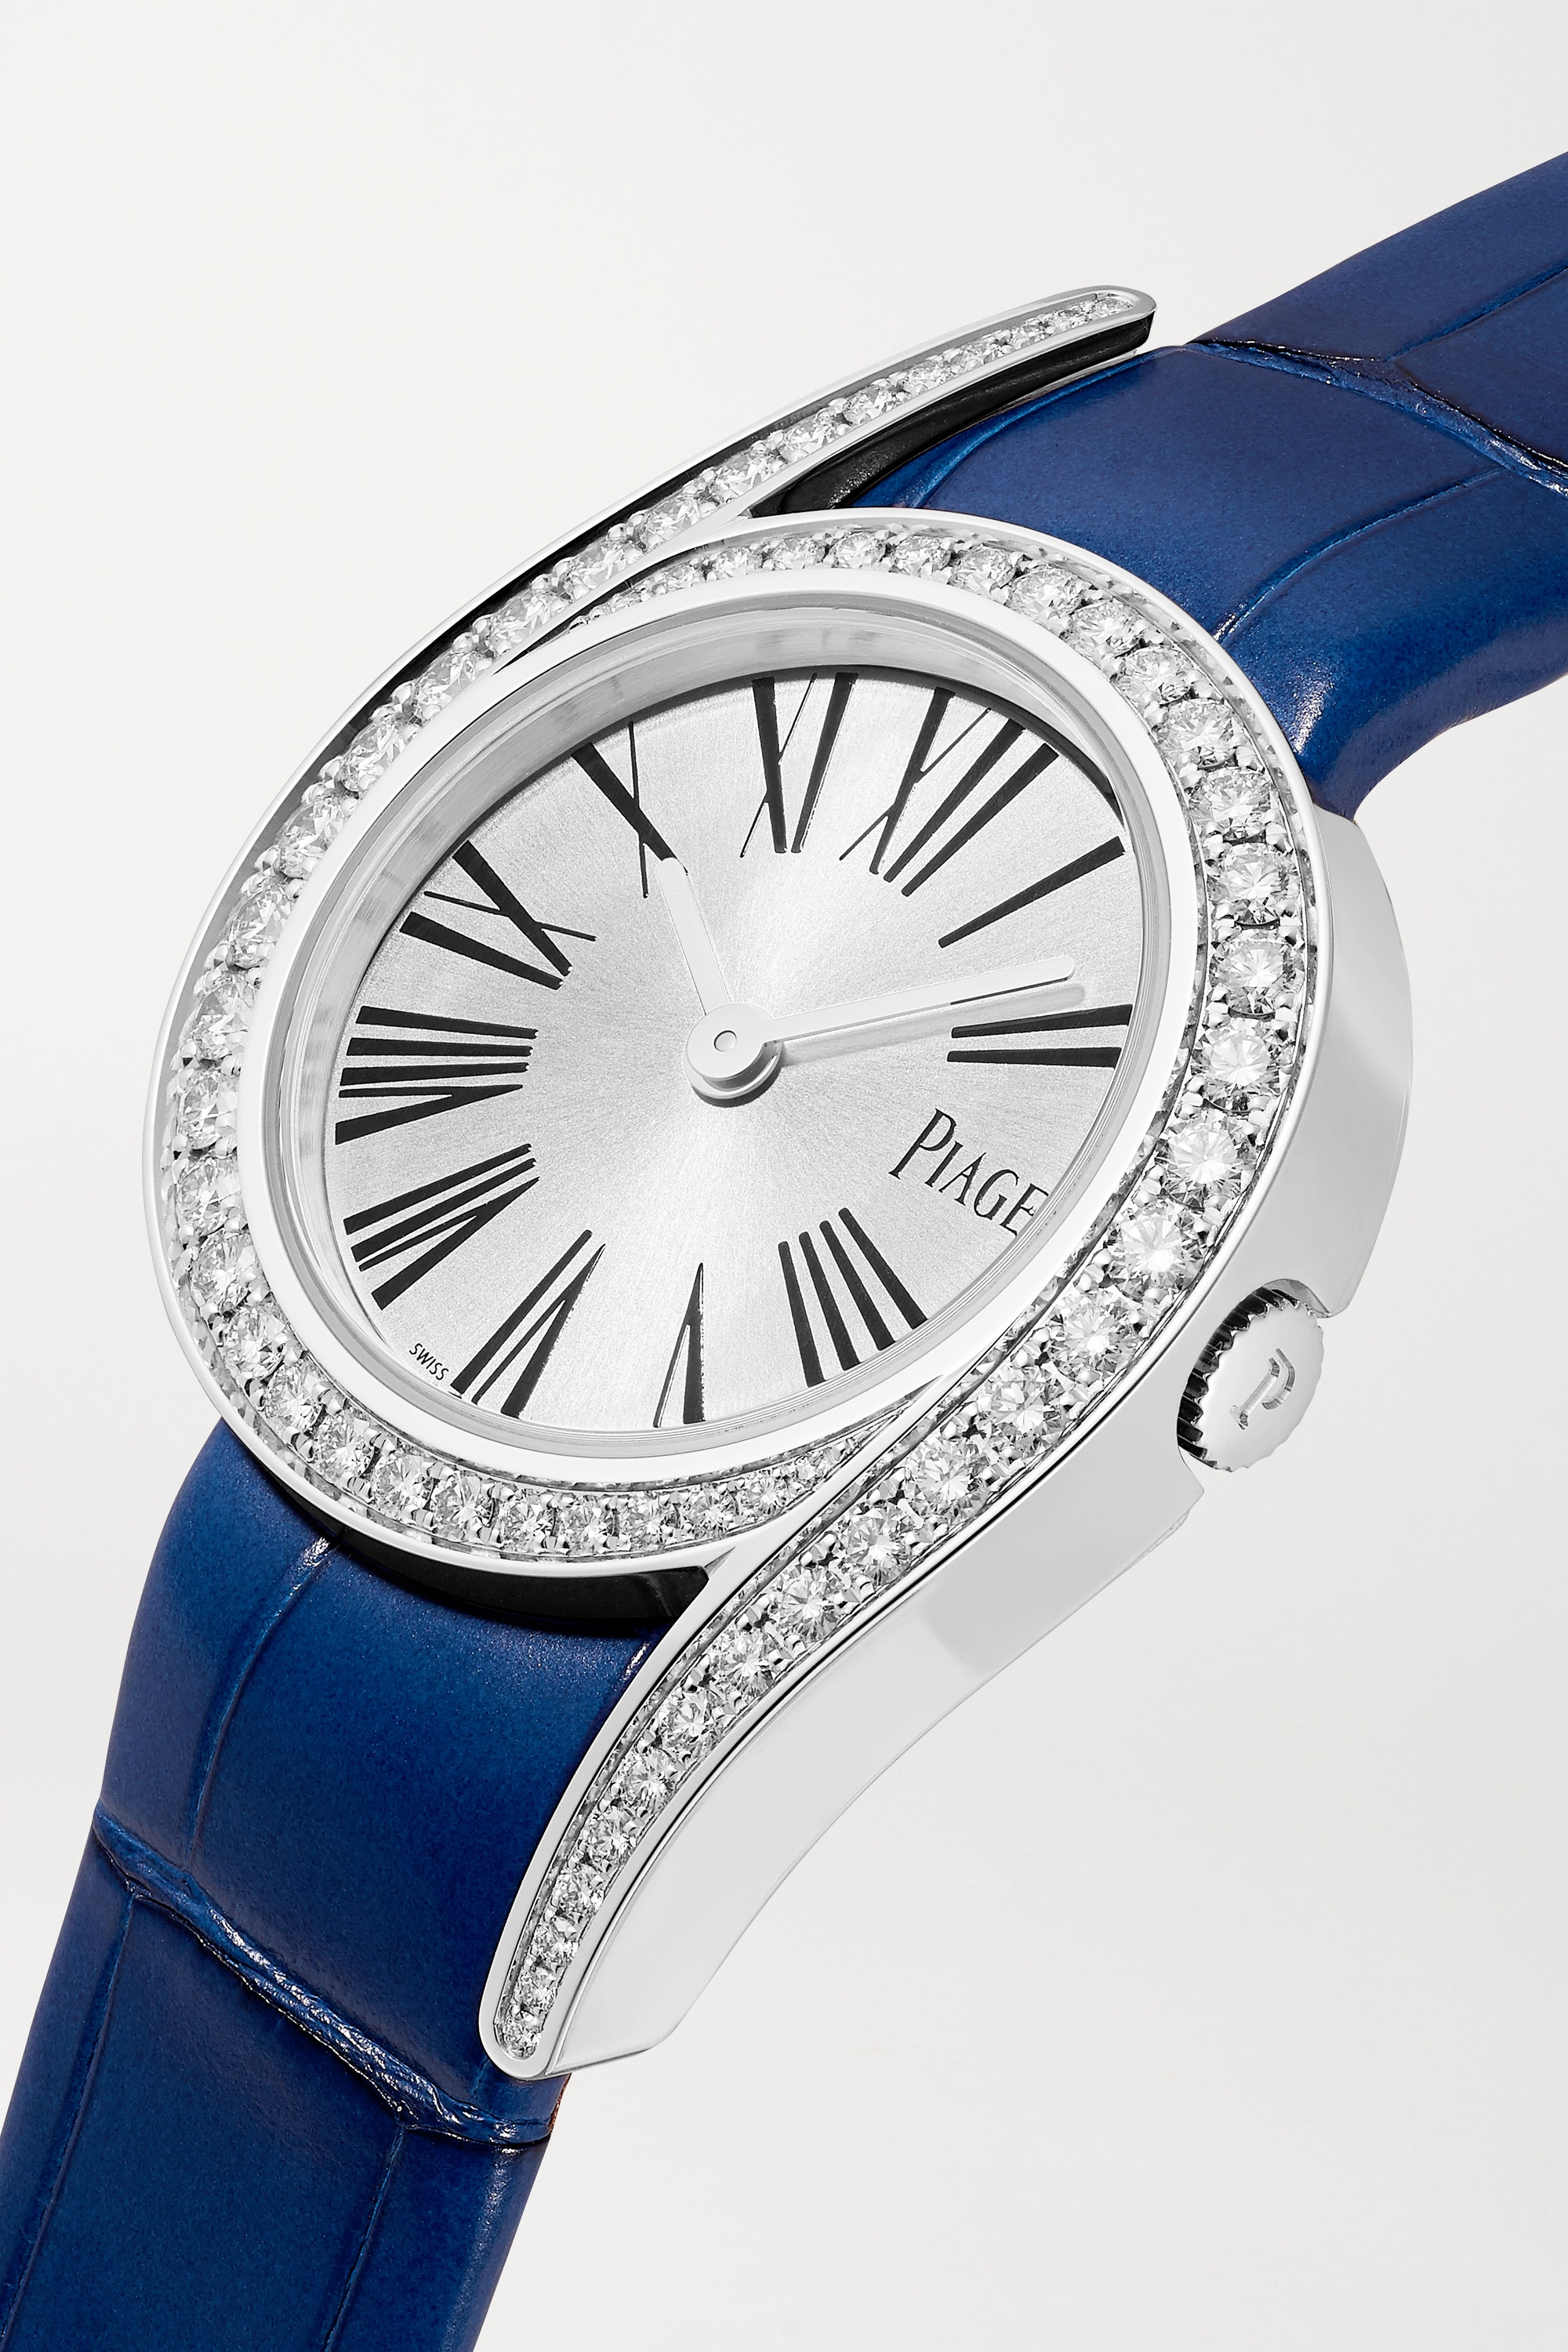 Piaget Montre en or blanc 18 carats et diamants à bracelet en alligator Limelight Gala 26 mm